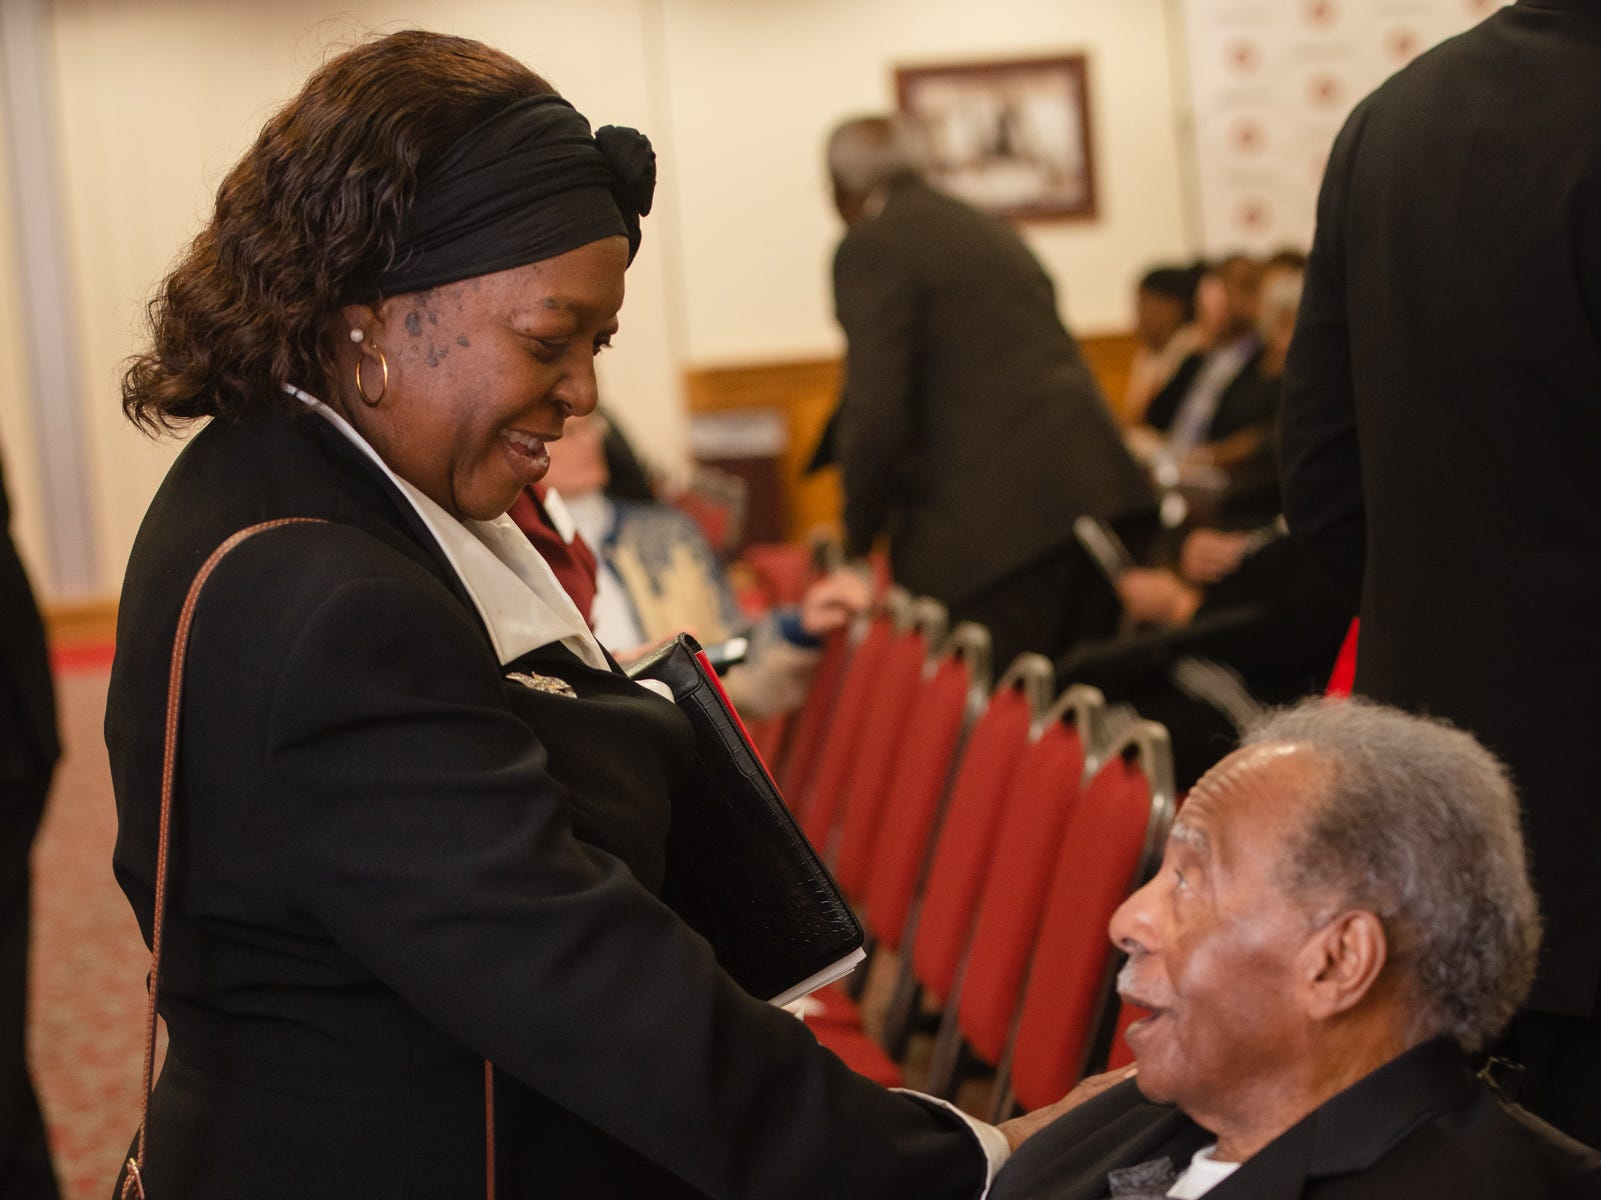 Rev. Carolyn Farrior speaks with Julius Montgomery before the start of the Julius Montgomery Pioneer Award and the Dr. Harvey L. Riley Bridge Builder Award presentation in celebration of Martin Luther King Jr. Day.